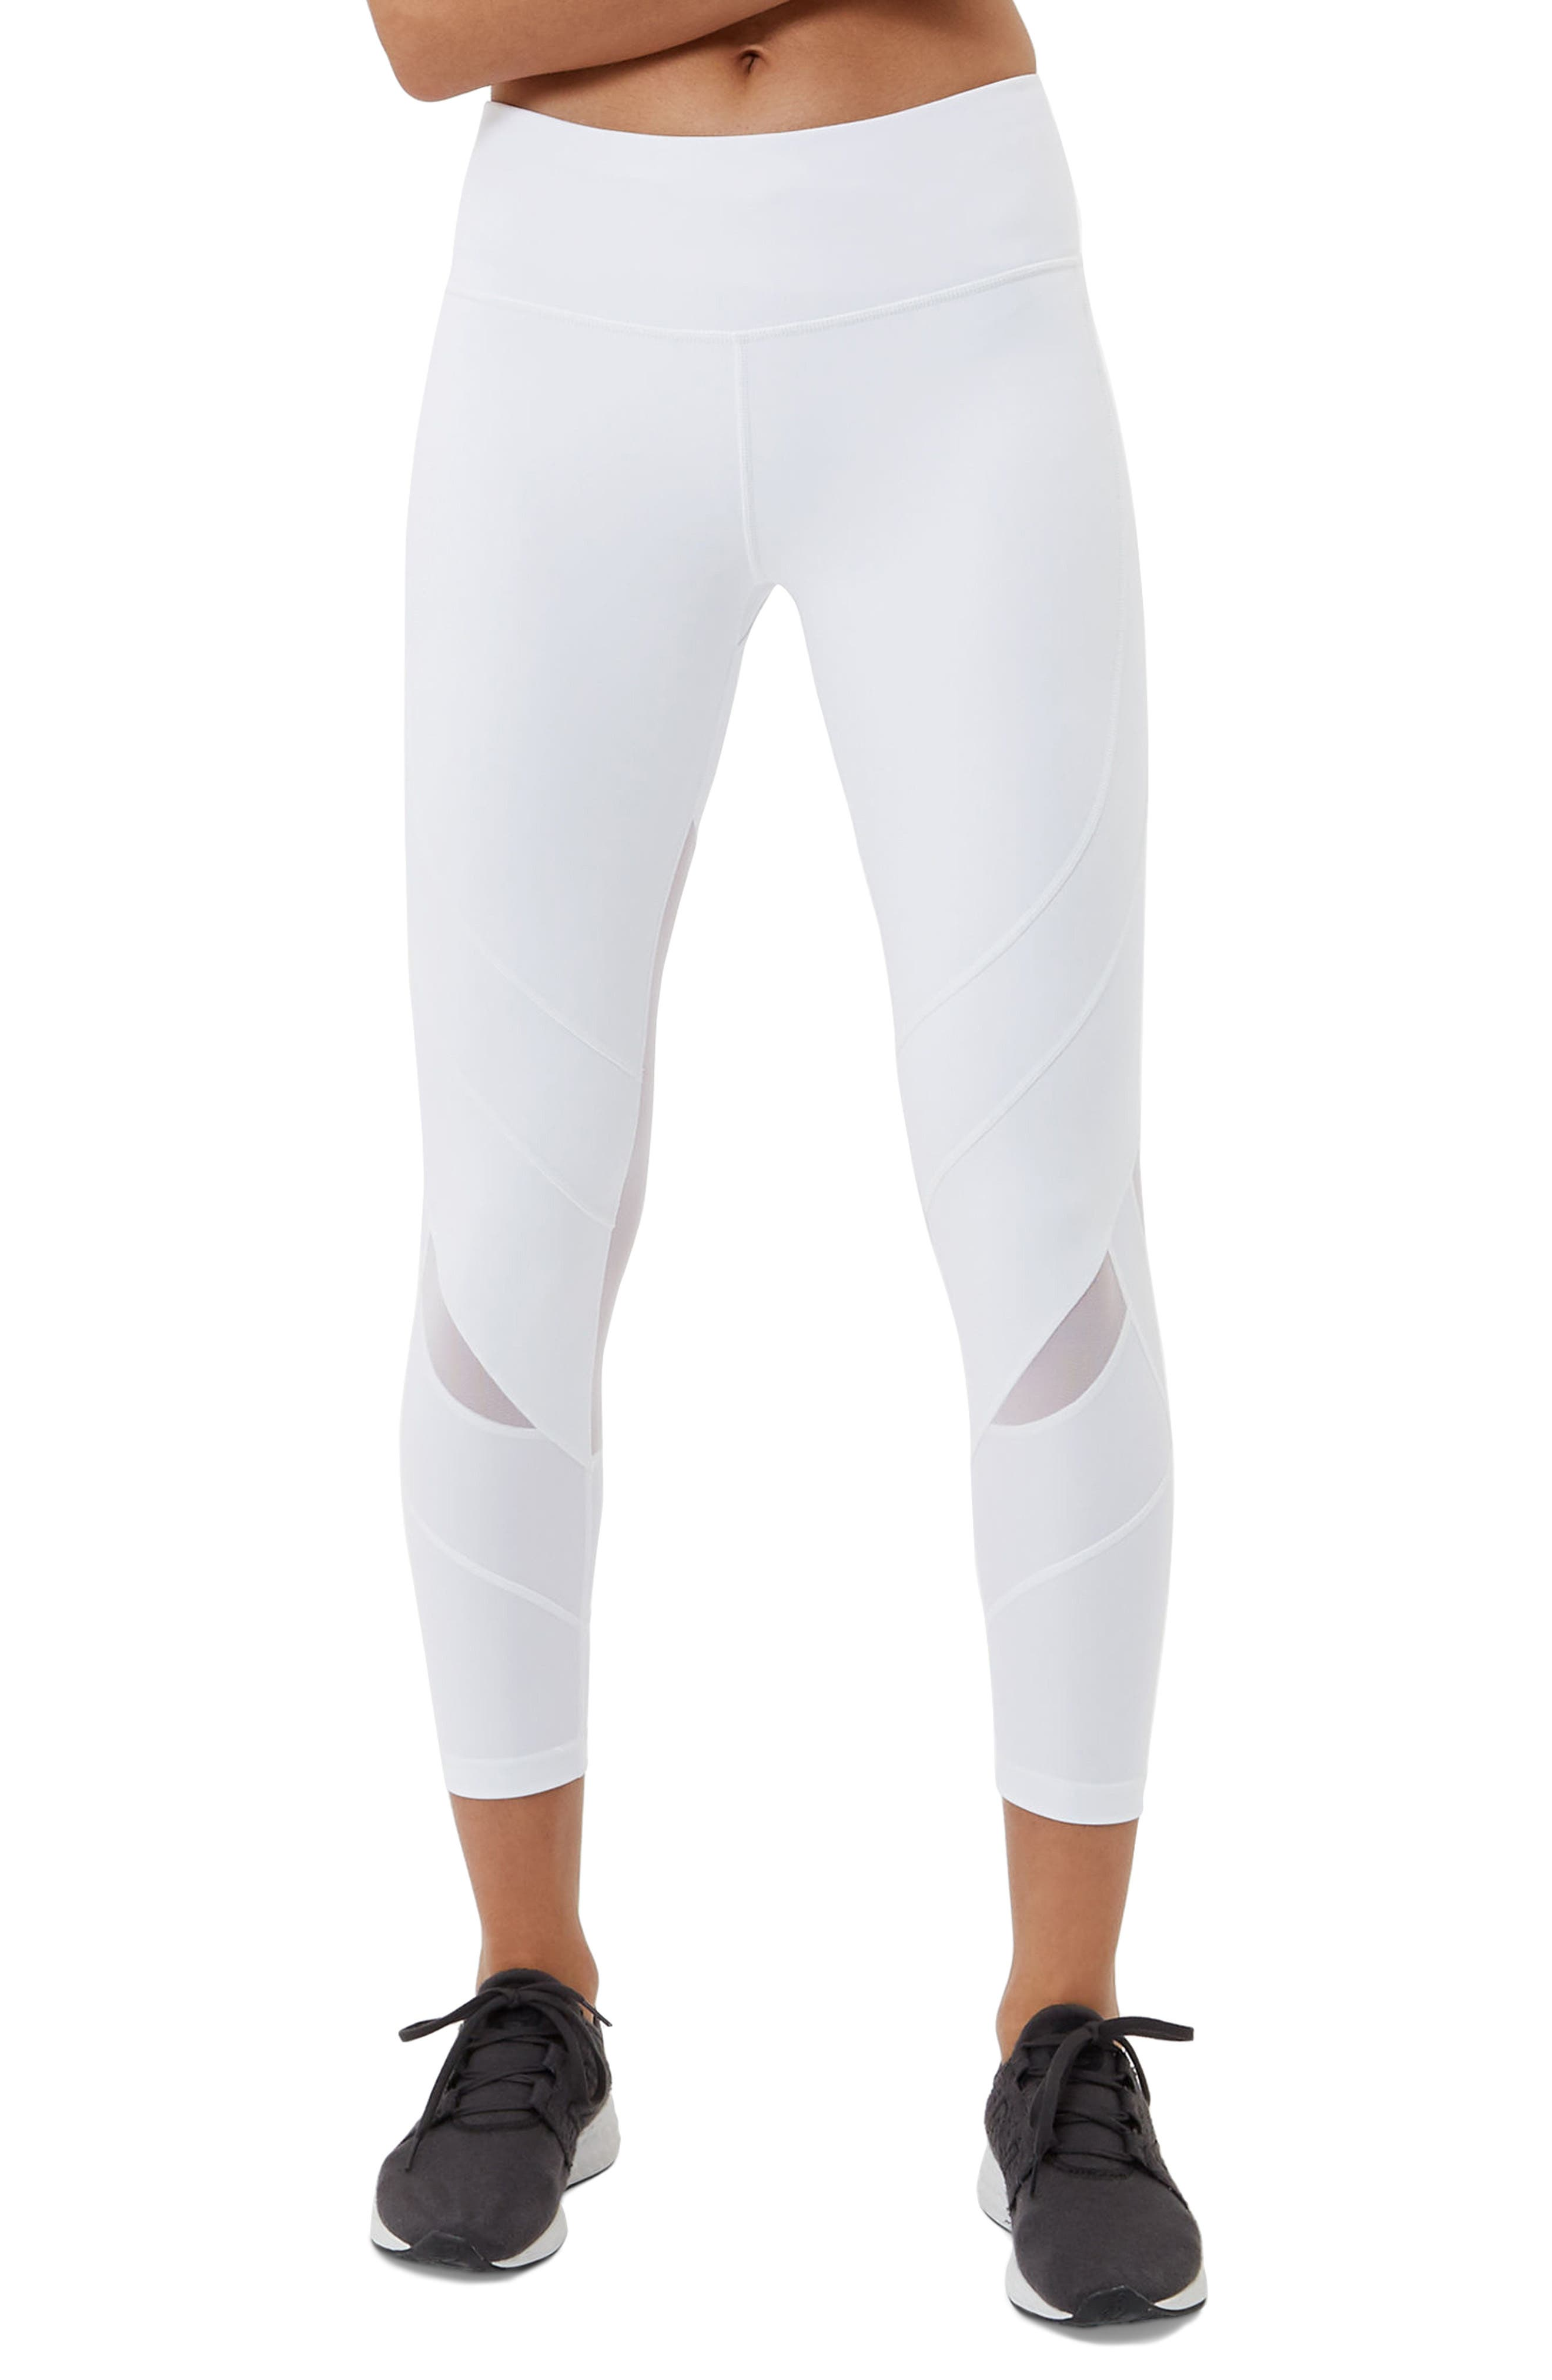 Power Ankle Leggings,                         Main,                         color, White